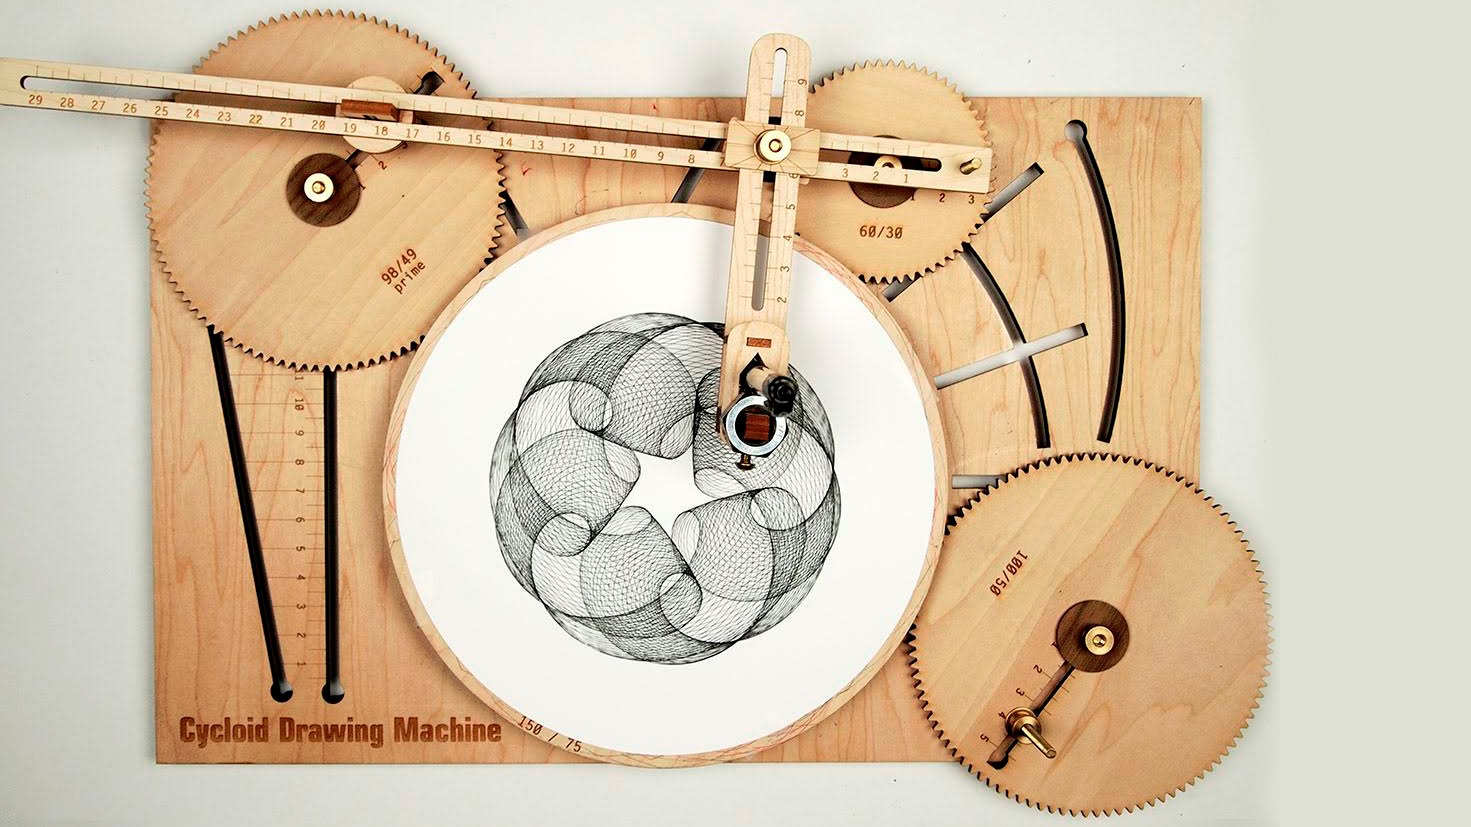 Stupendous Eat Your Heart Out Spirograph Clycloid Drawing Machine Is Download Free Architecture Designs Rallybritishbridgeorg